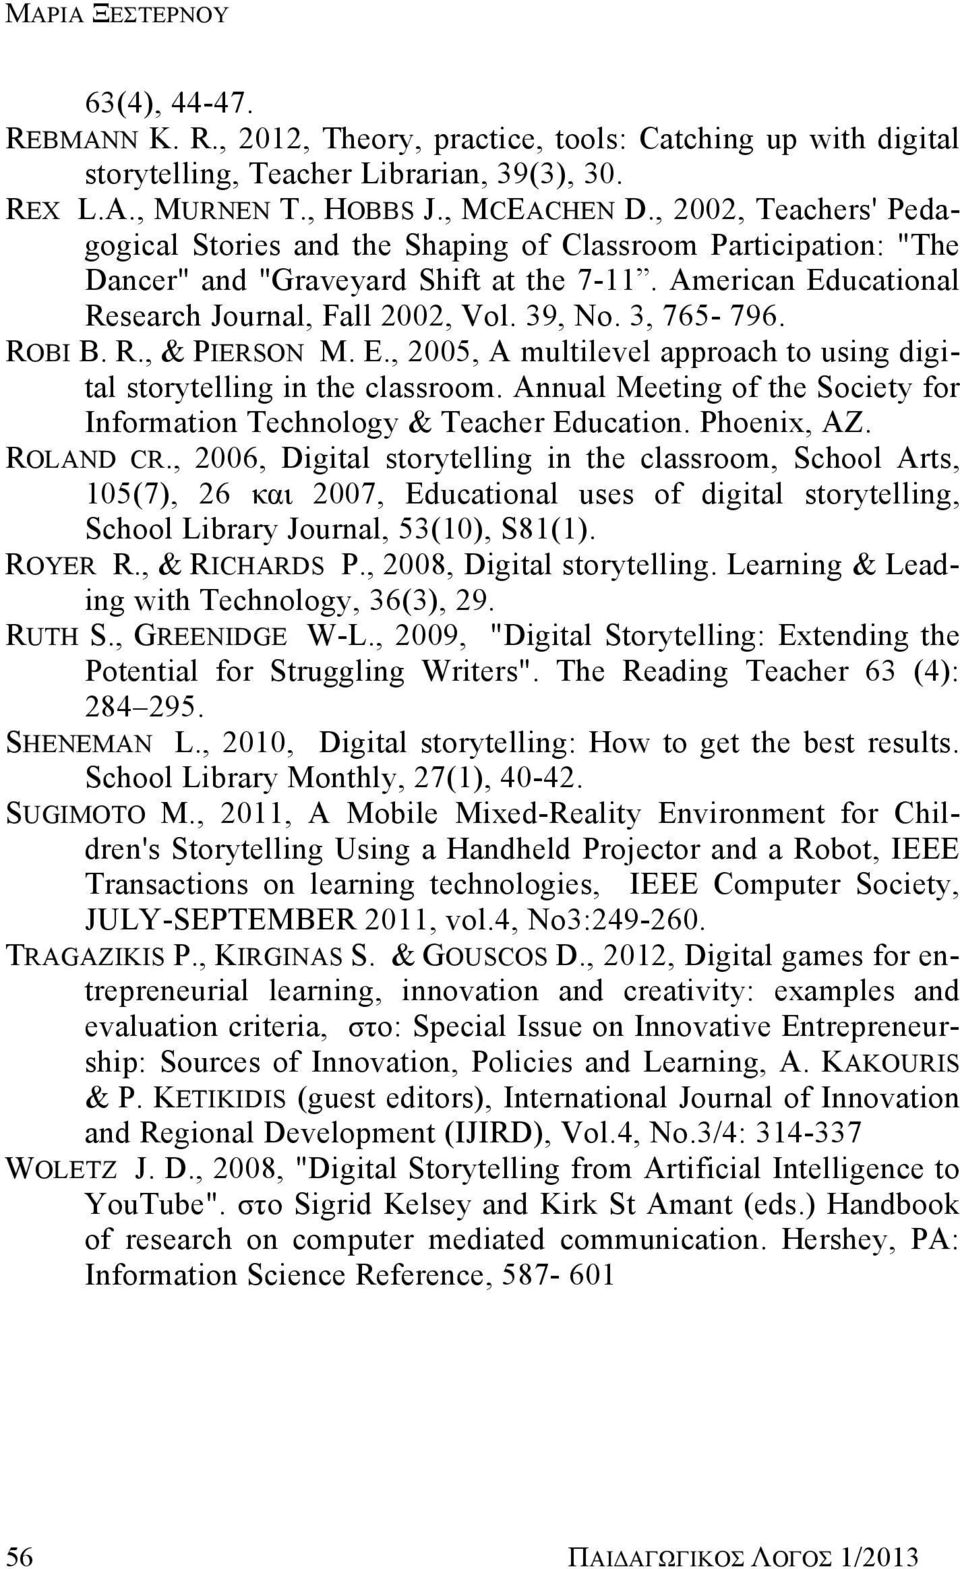 3, 765-796. ROBI B. R., & PIERSON M. E., 2005, A multilevel approach to using digital storytelling in the classroom. Annual Meeting of the Society for Information Technology & Teacher Education.